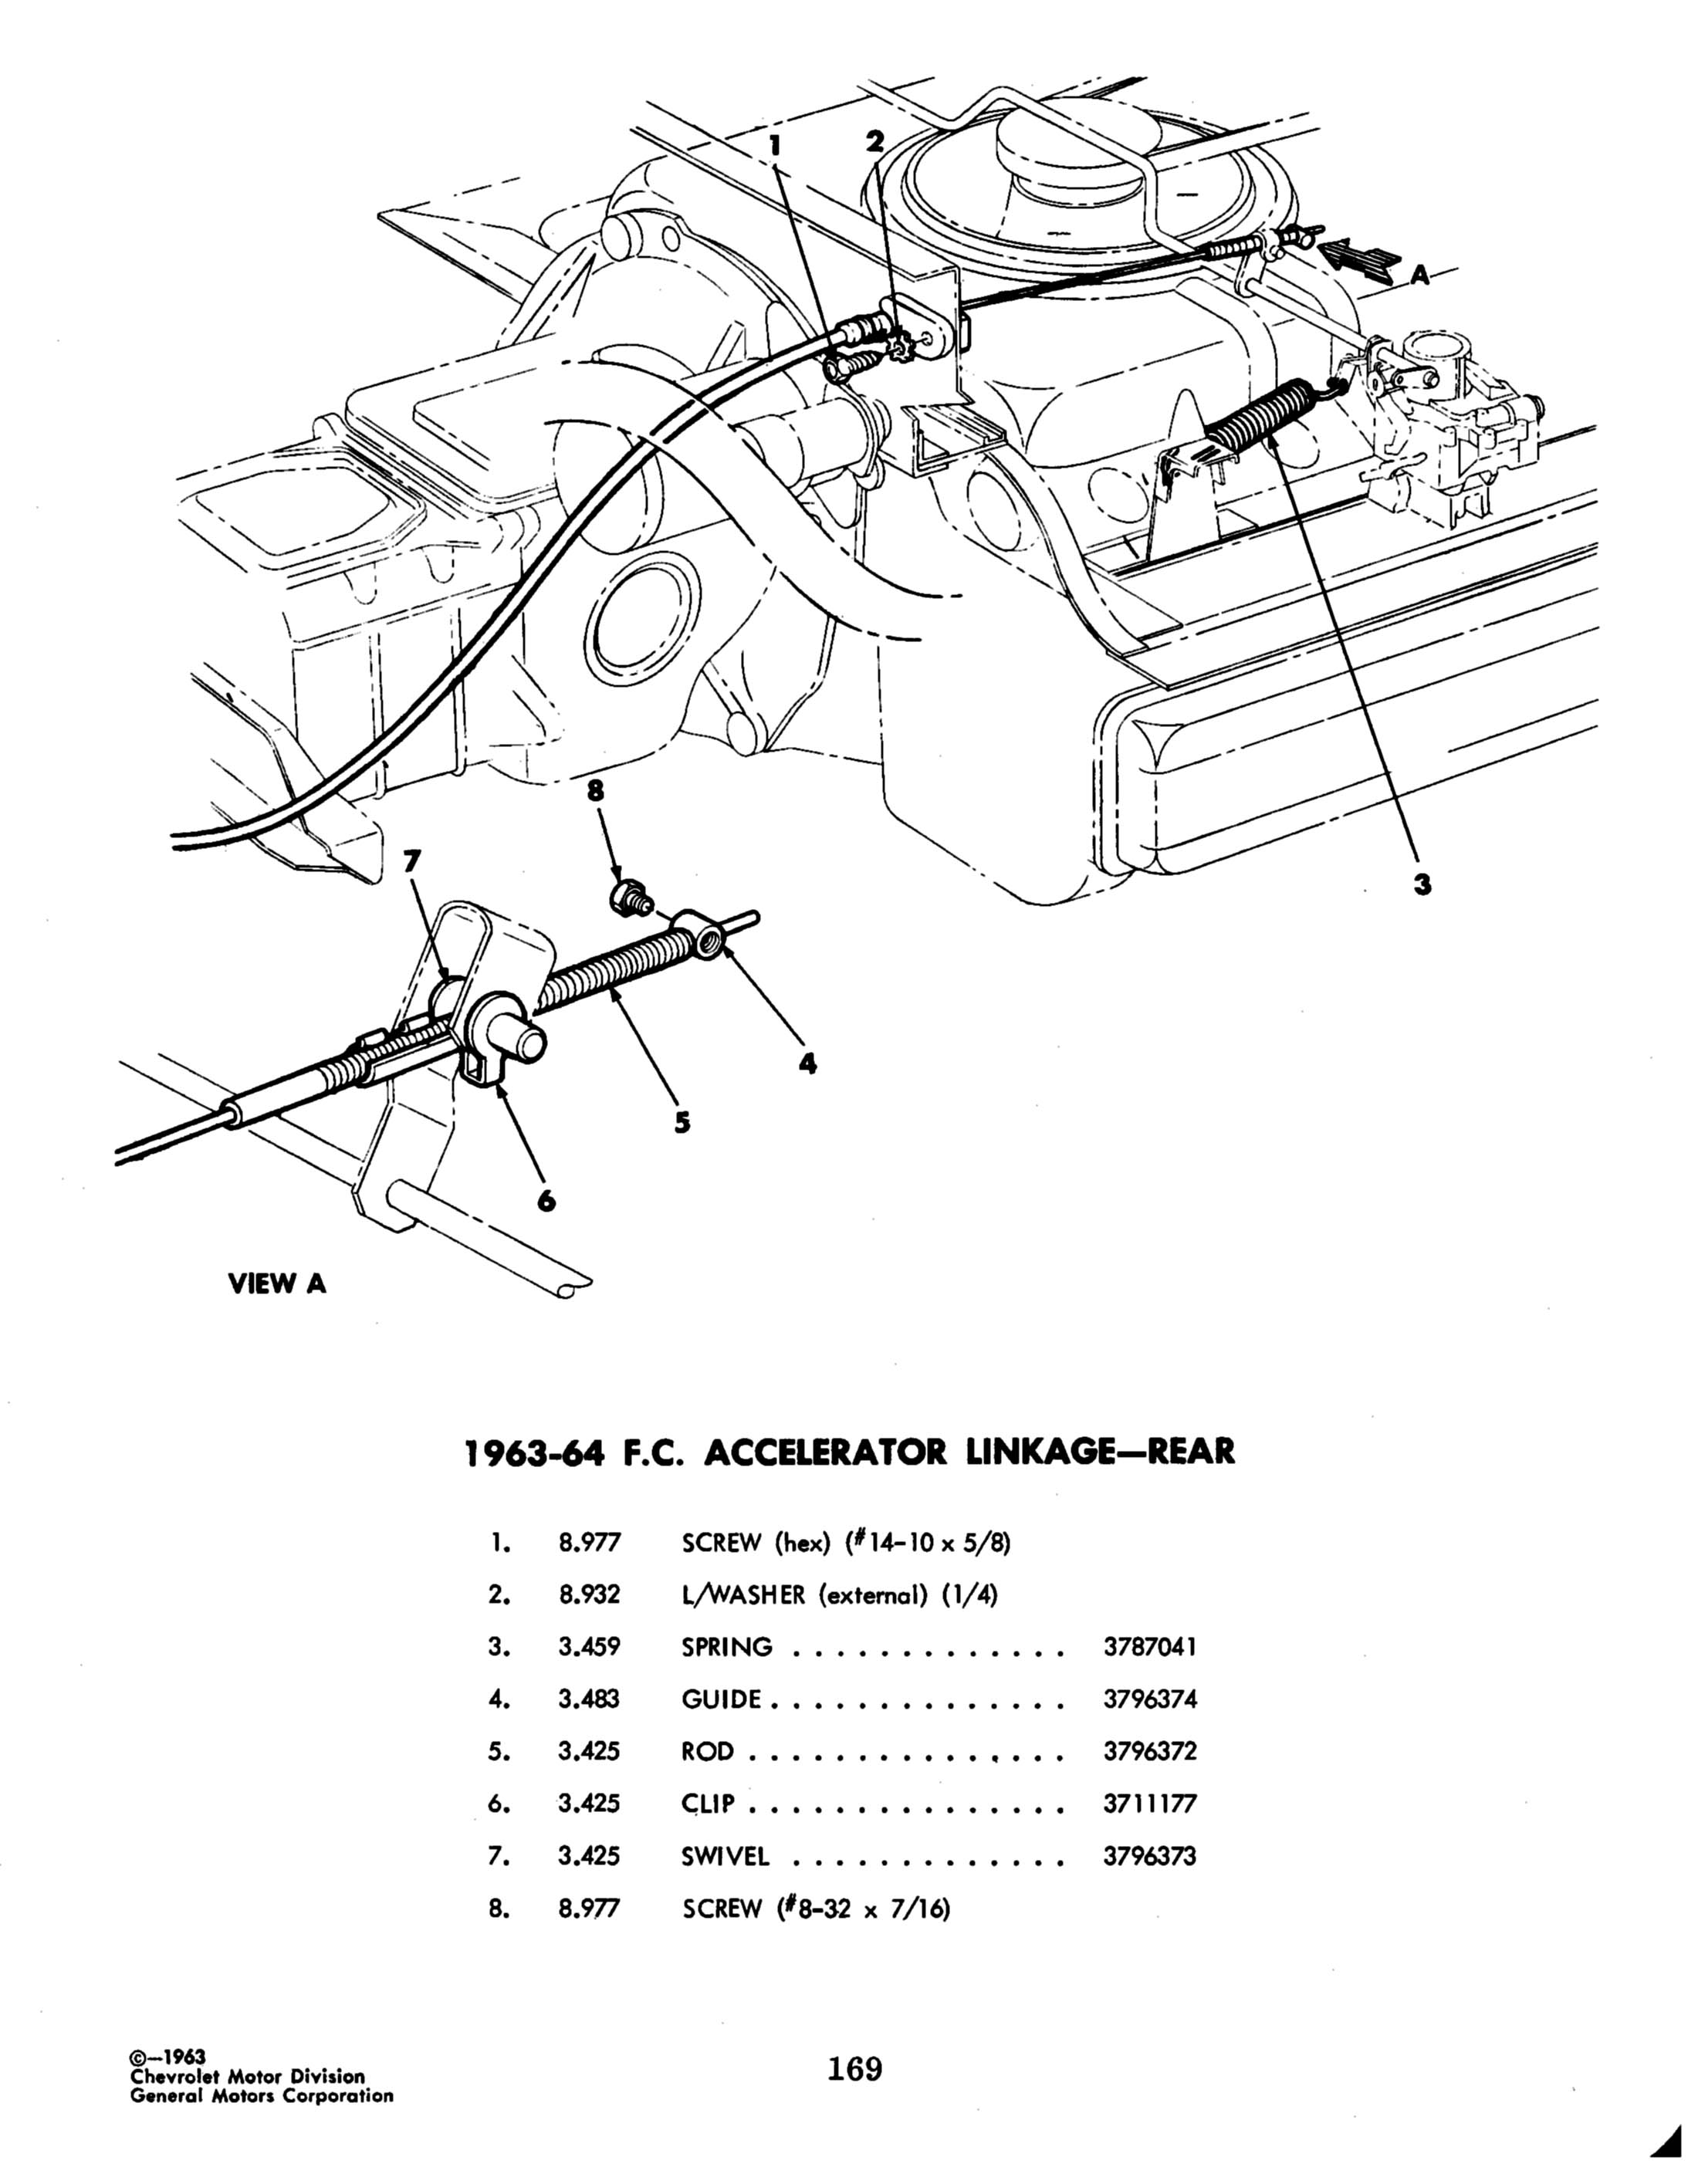 1966 corvair engine diagram wiring diagram 1966 corvair corsa wiring diagram 1965 corvair wiring diagram